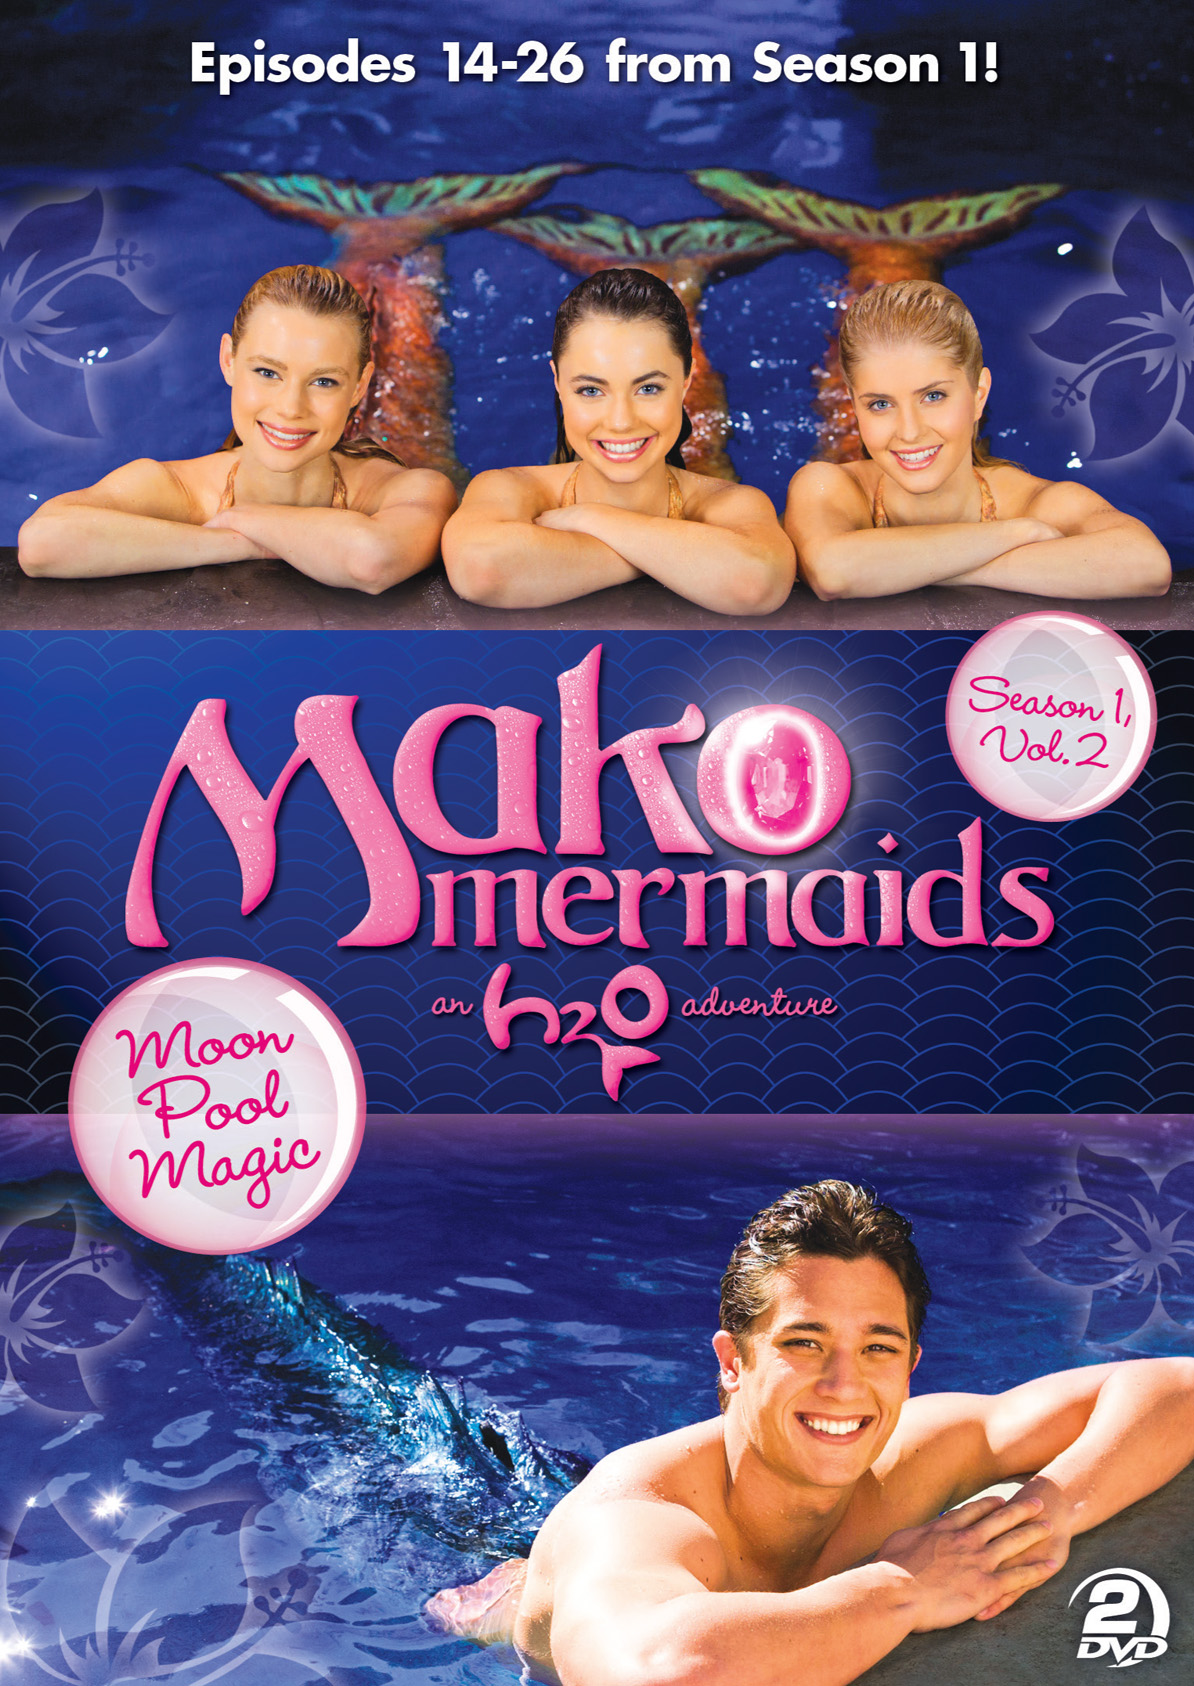 Mako mermaids an h2o adventure season 1 vol 2 moon for H2o season 2